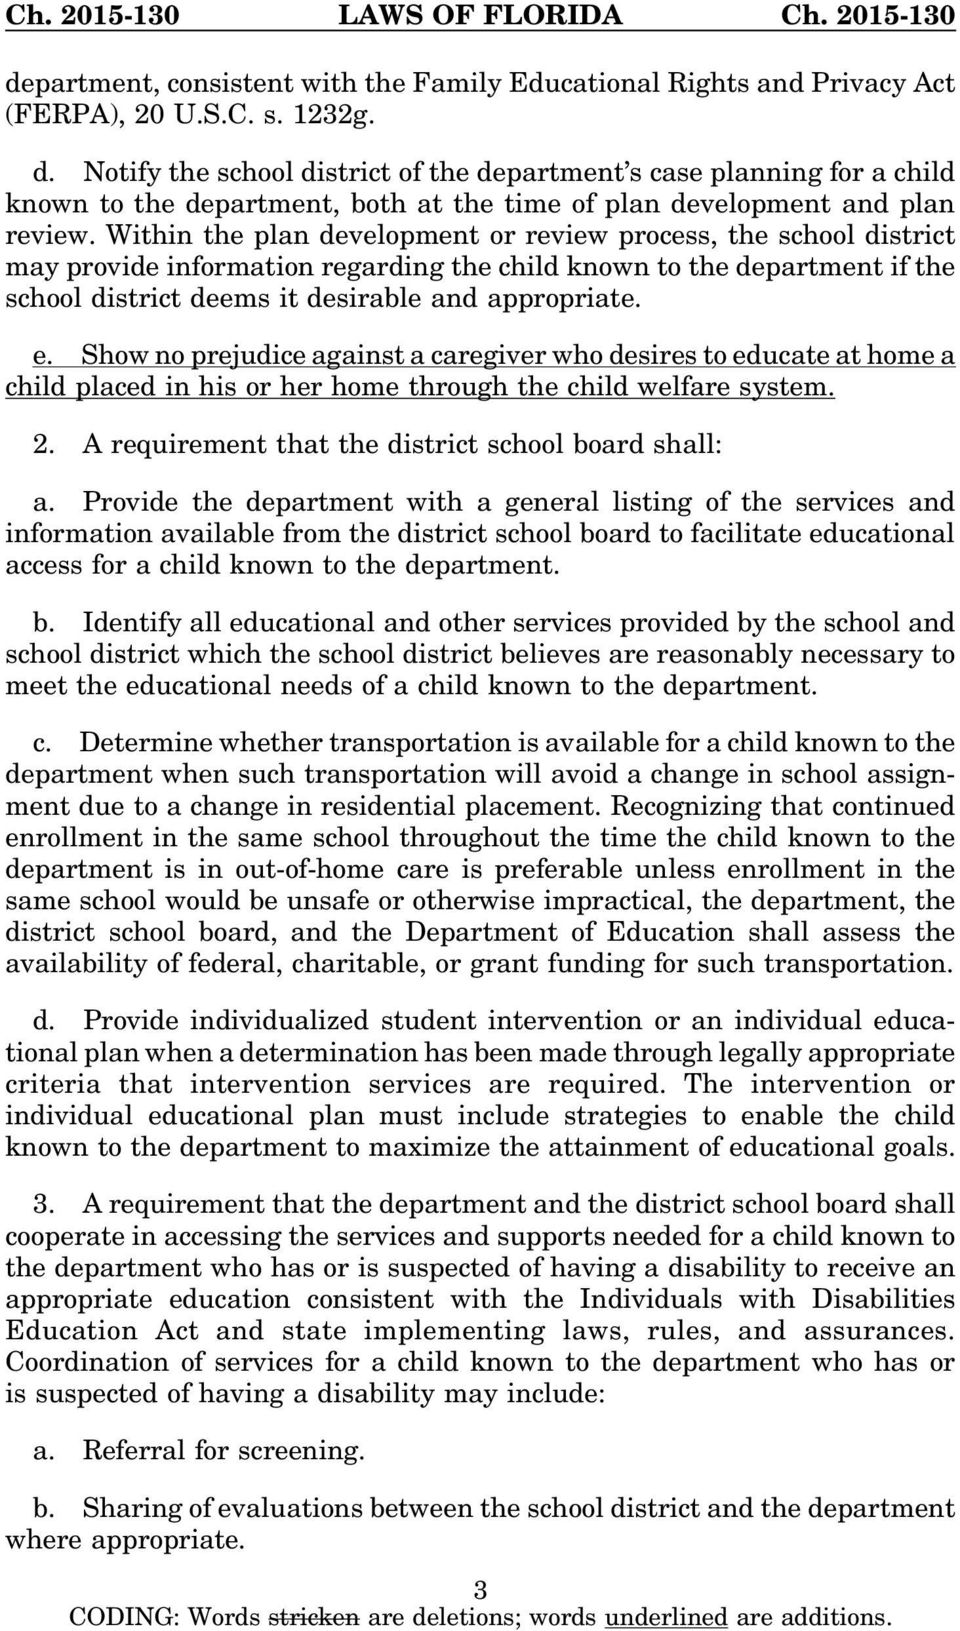 Within the plan development or review process, the school district may provide information regarding the child known to the department if the school district deems it desirable and appropriate. e.